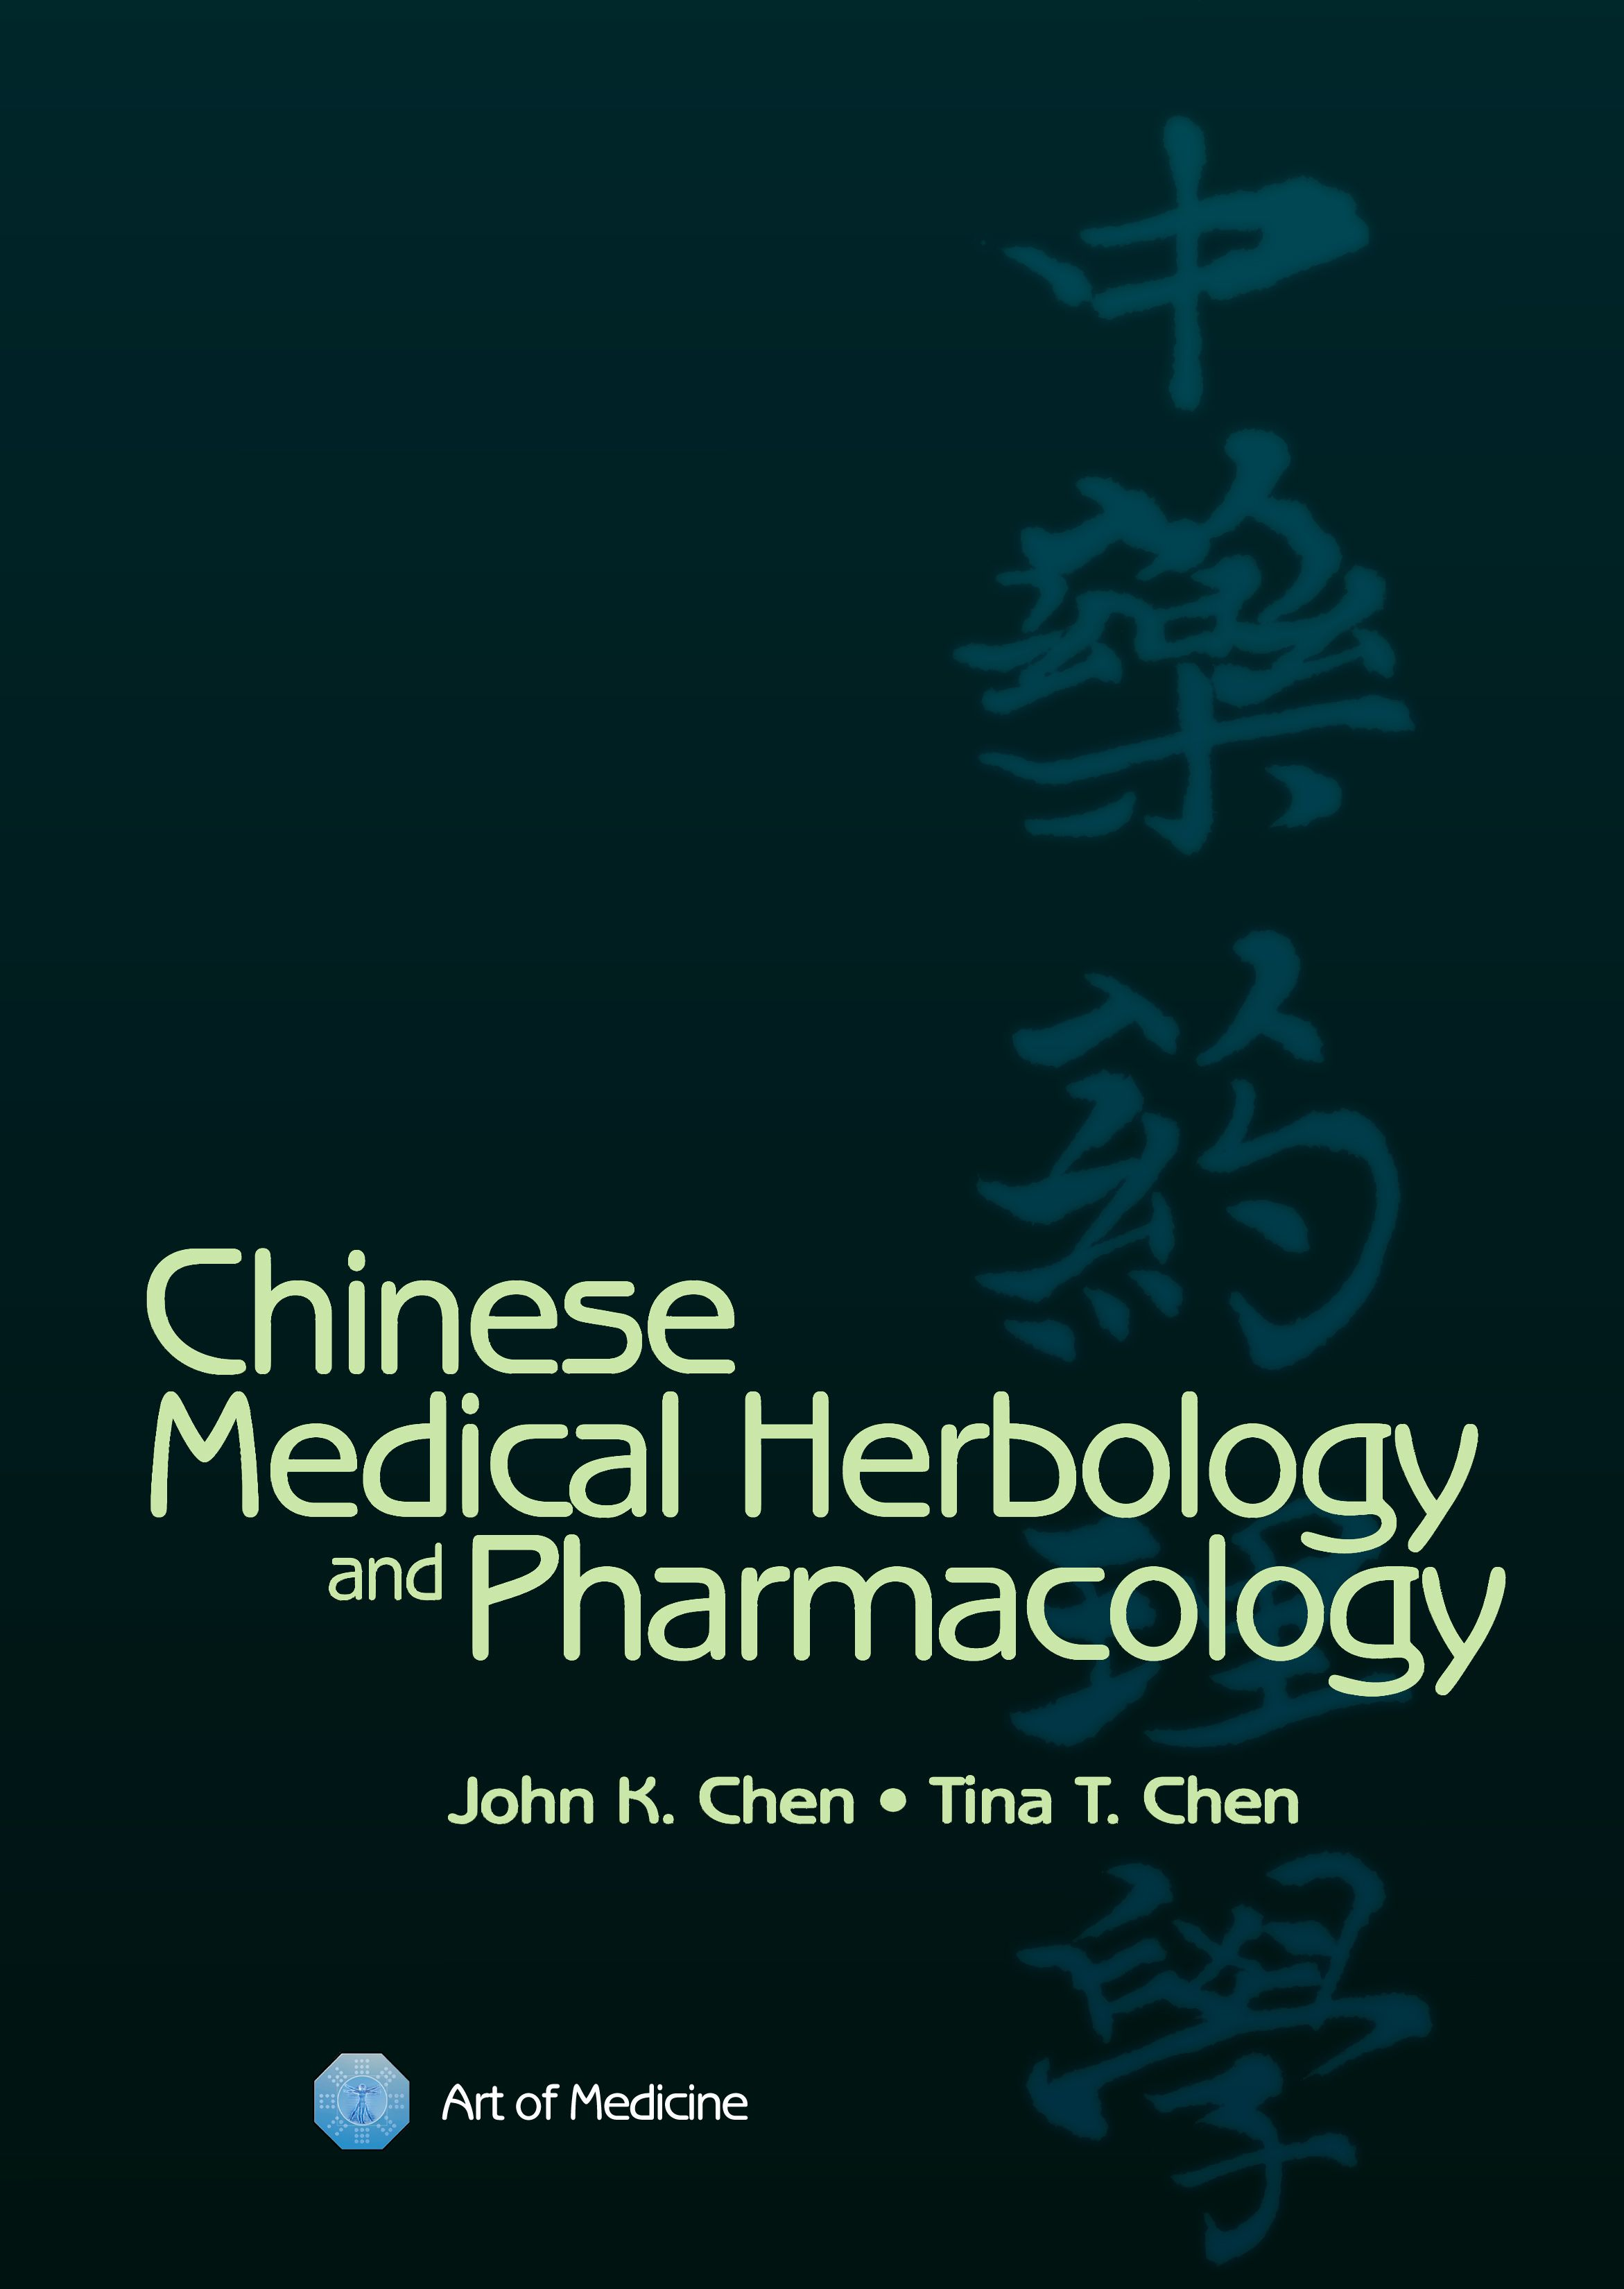 Chinese Medical Herbology & Pharmacology by John K Chen